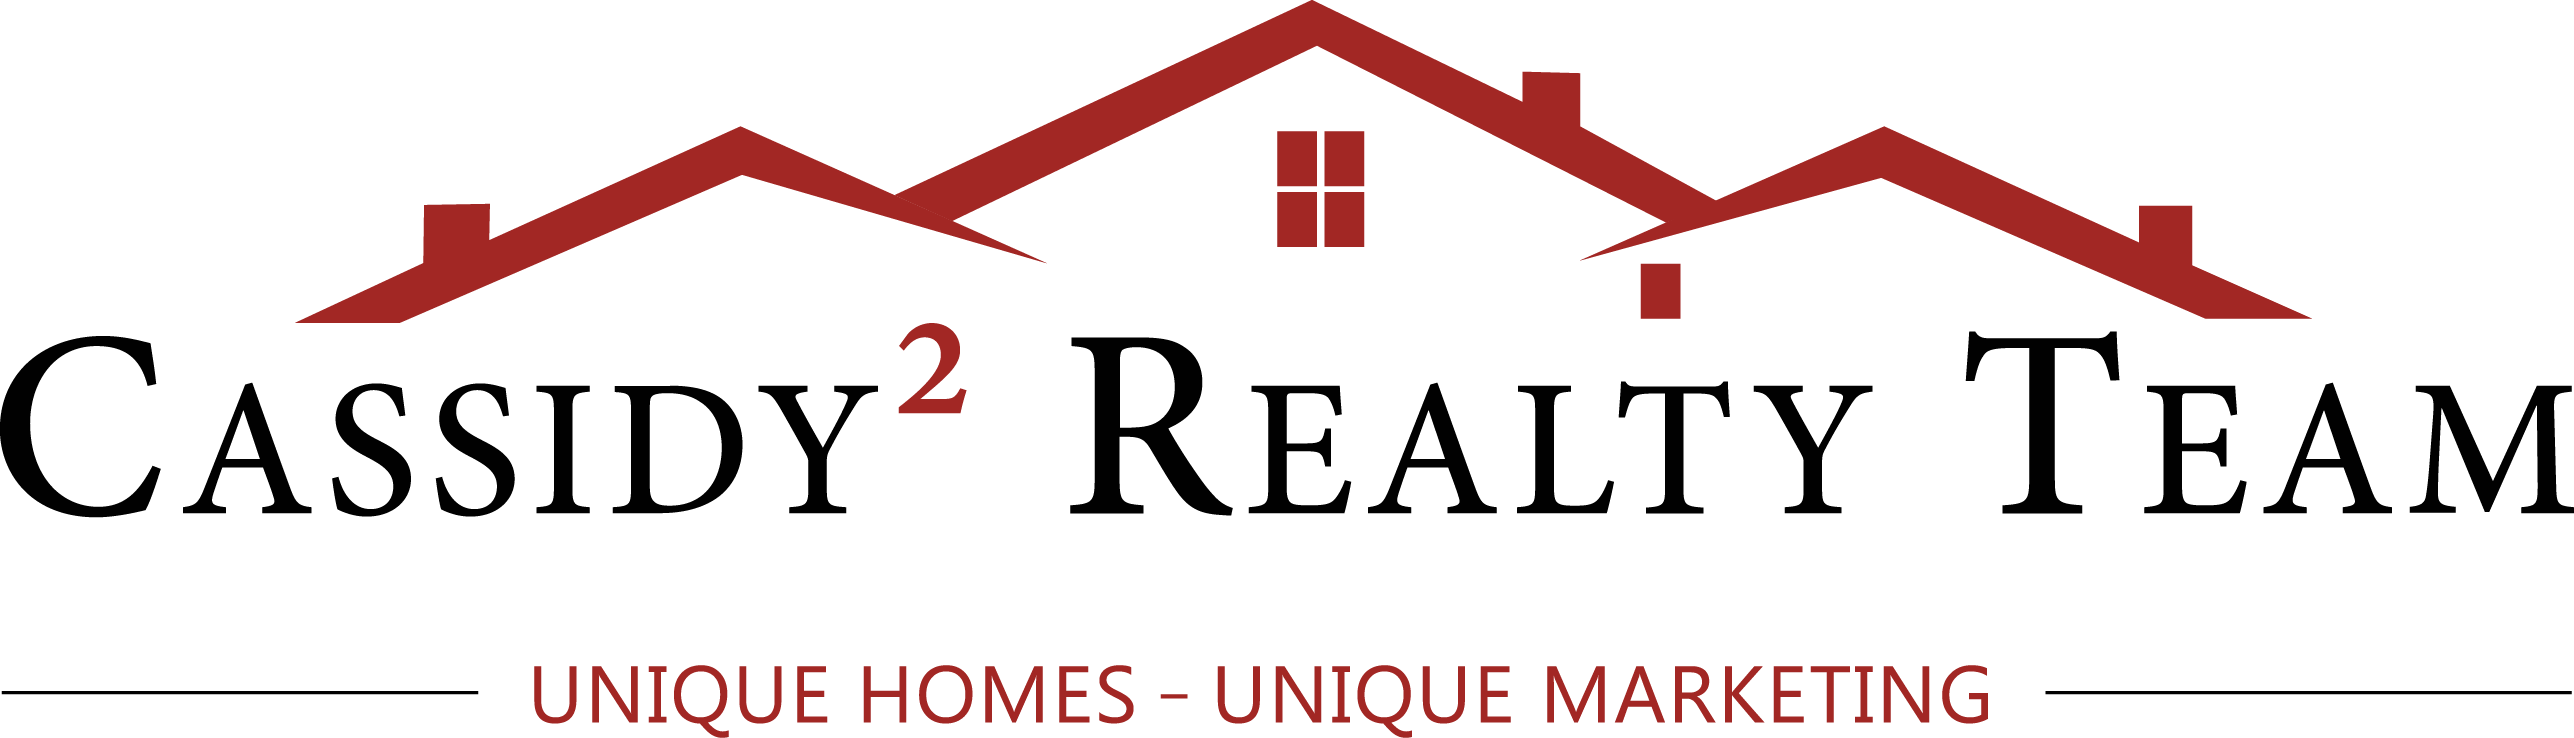 Cassidy Realty Team | Mountain Lakes NJ Realtors